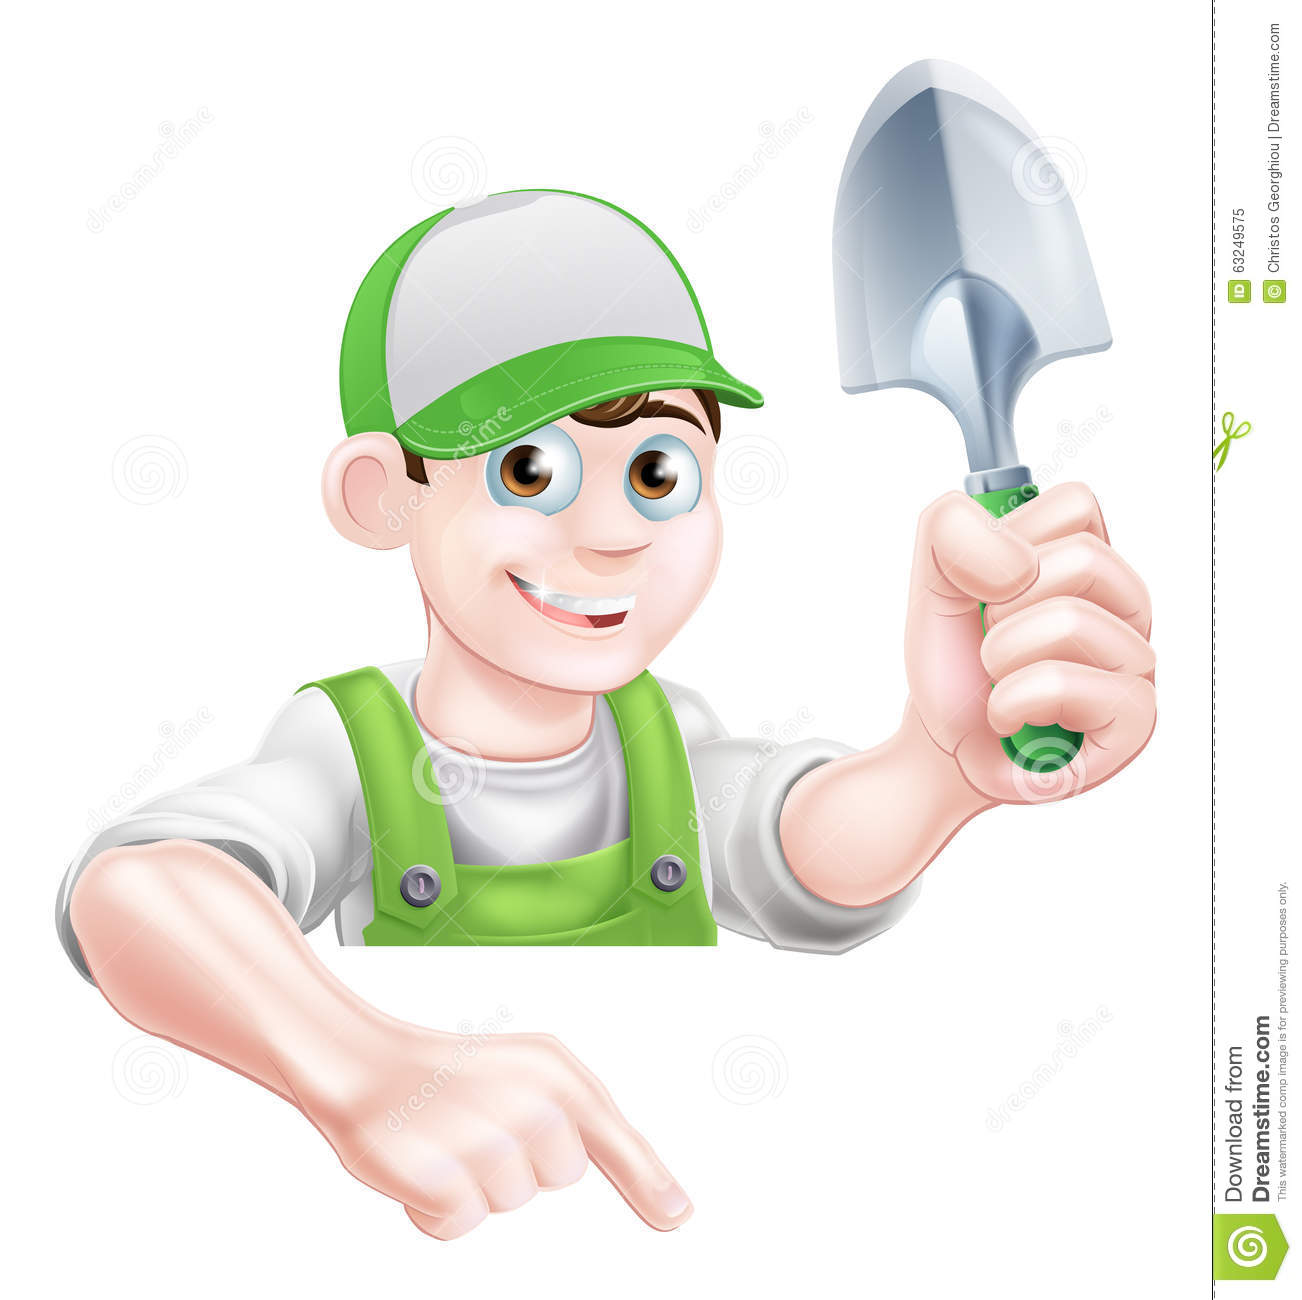 Cartoon Character Design Tool : Cartoon garden man with trowel stock vector image